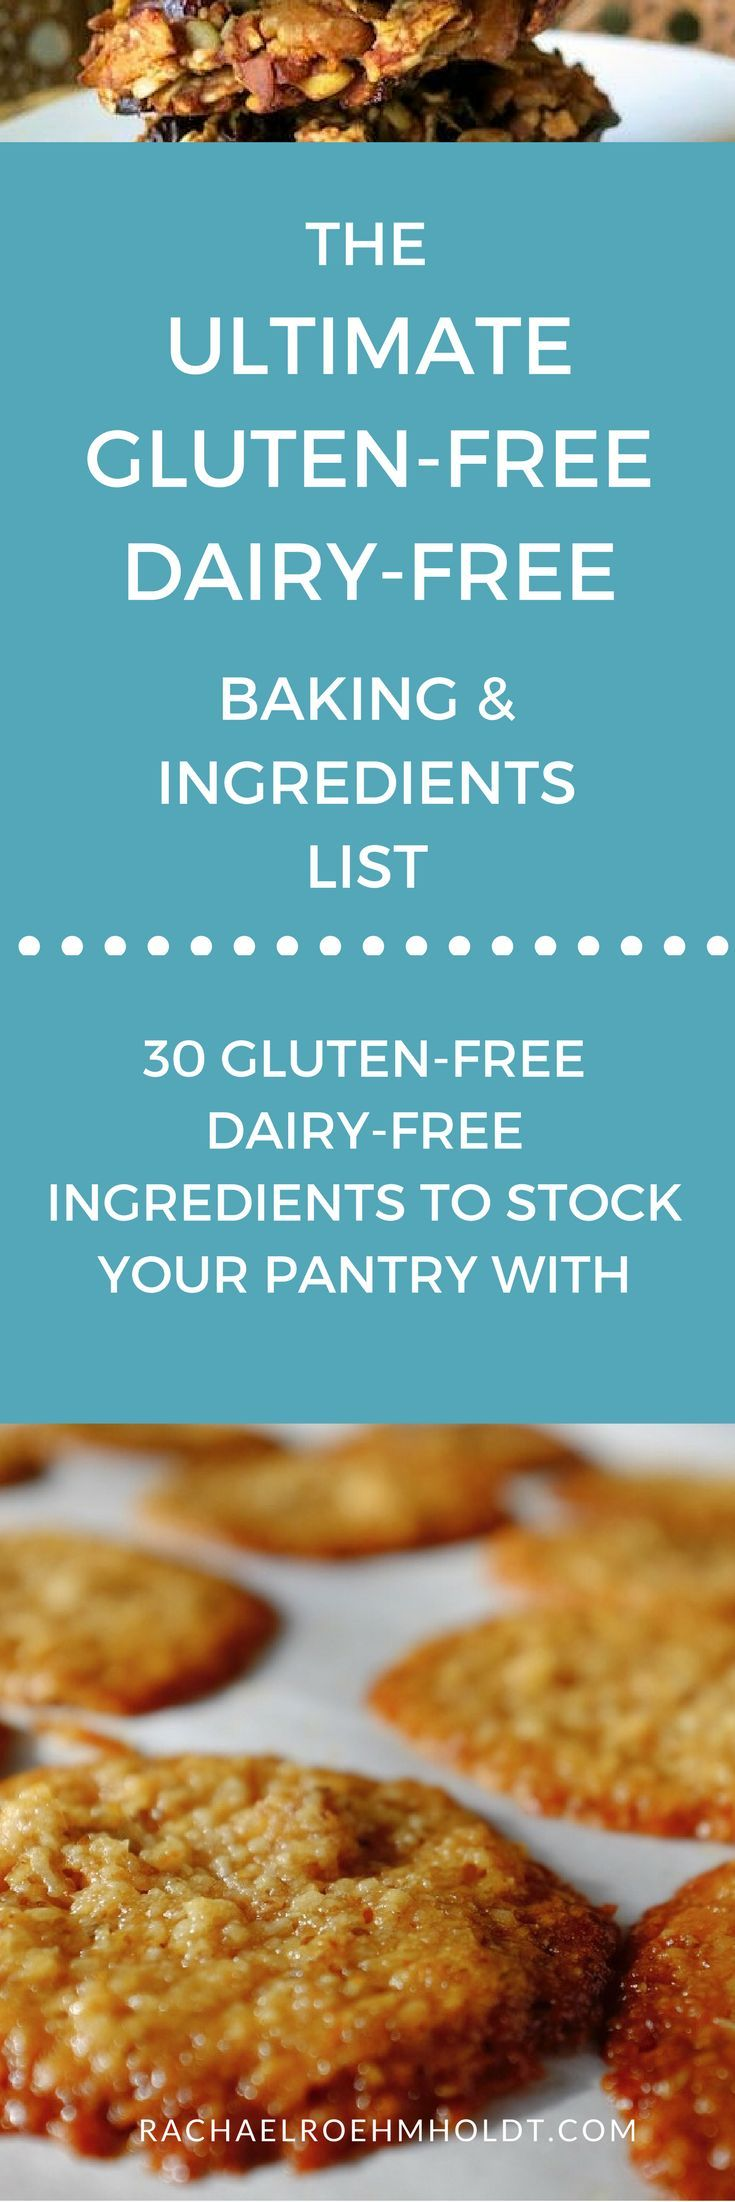 Getting started with gluten-free dairy-free baking? Check out this list of 30 ingredients to keep on hand for gluten-free dairy-free desserts, breads, and cake recipes.